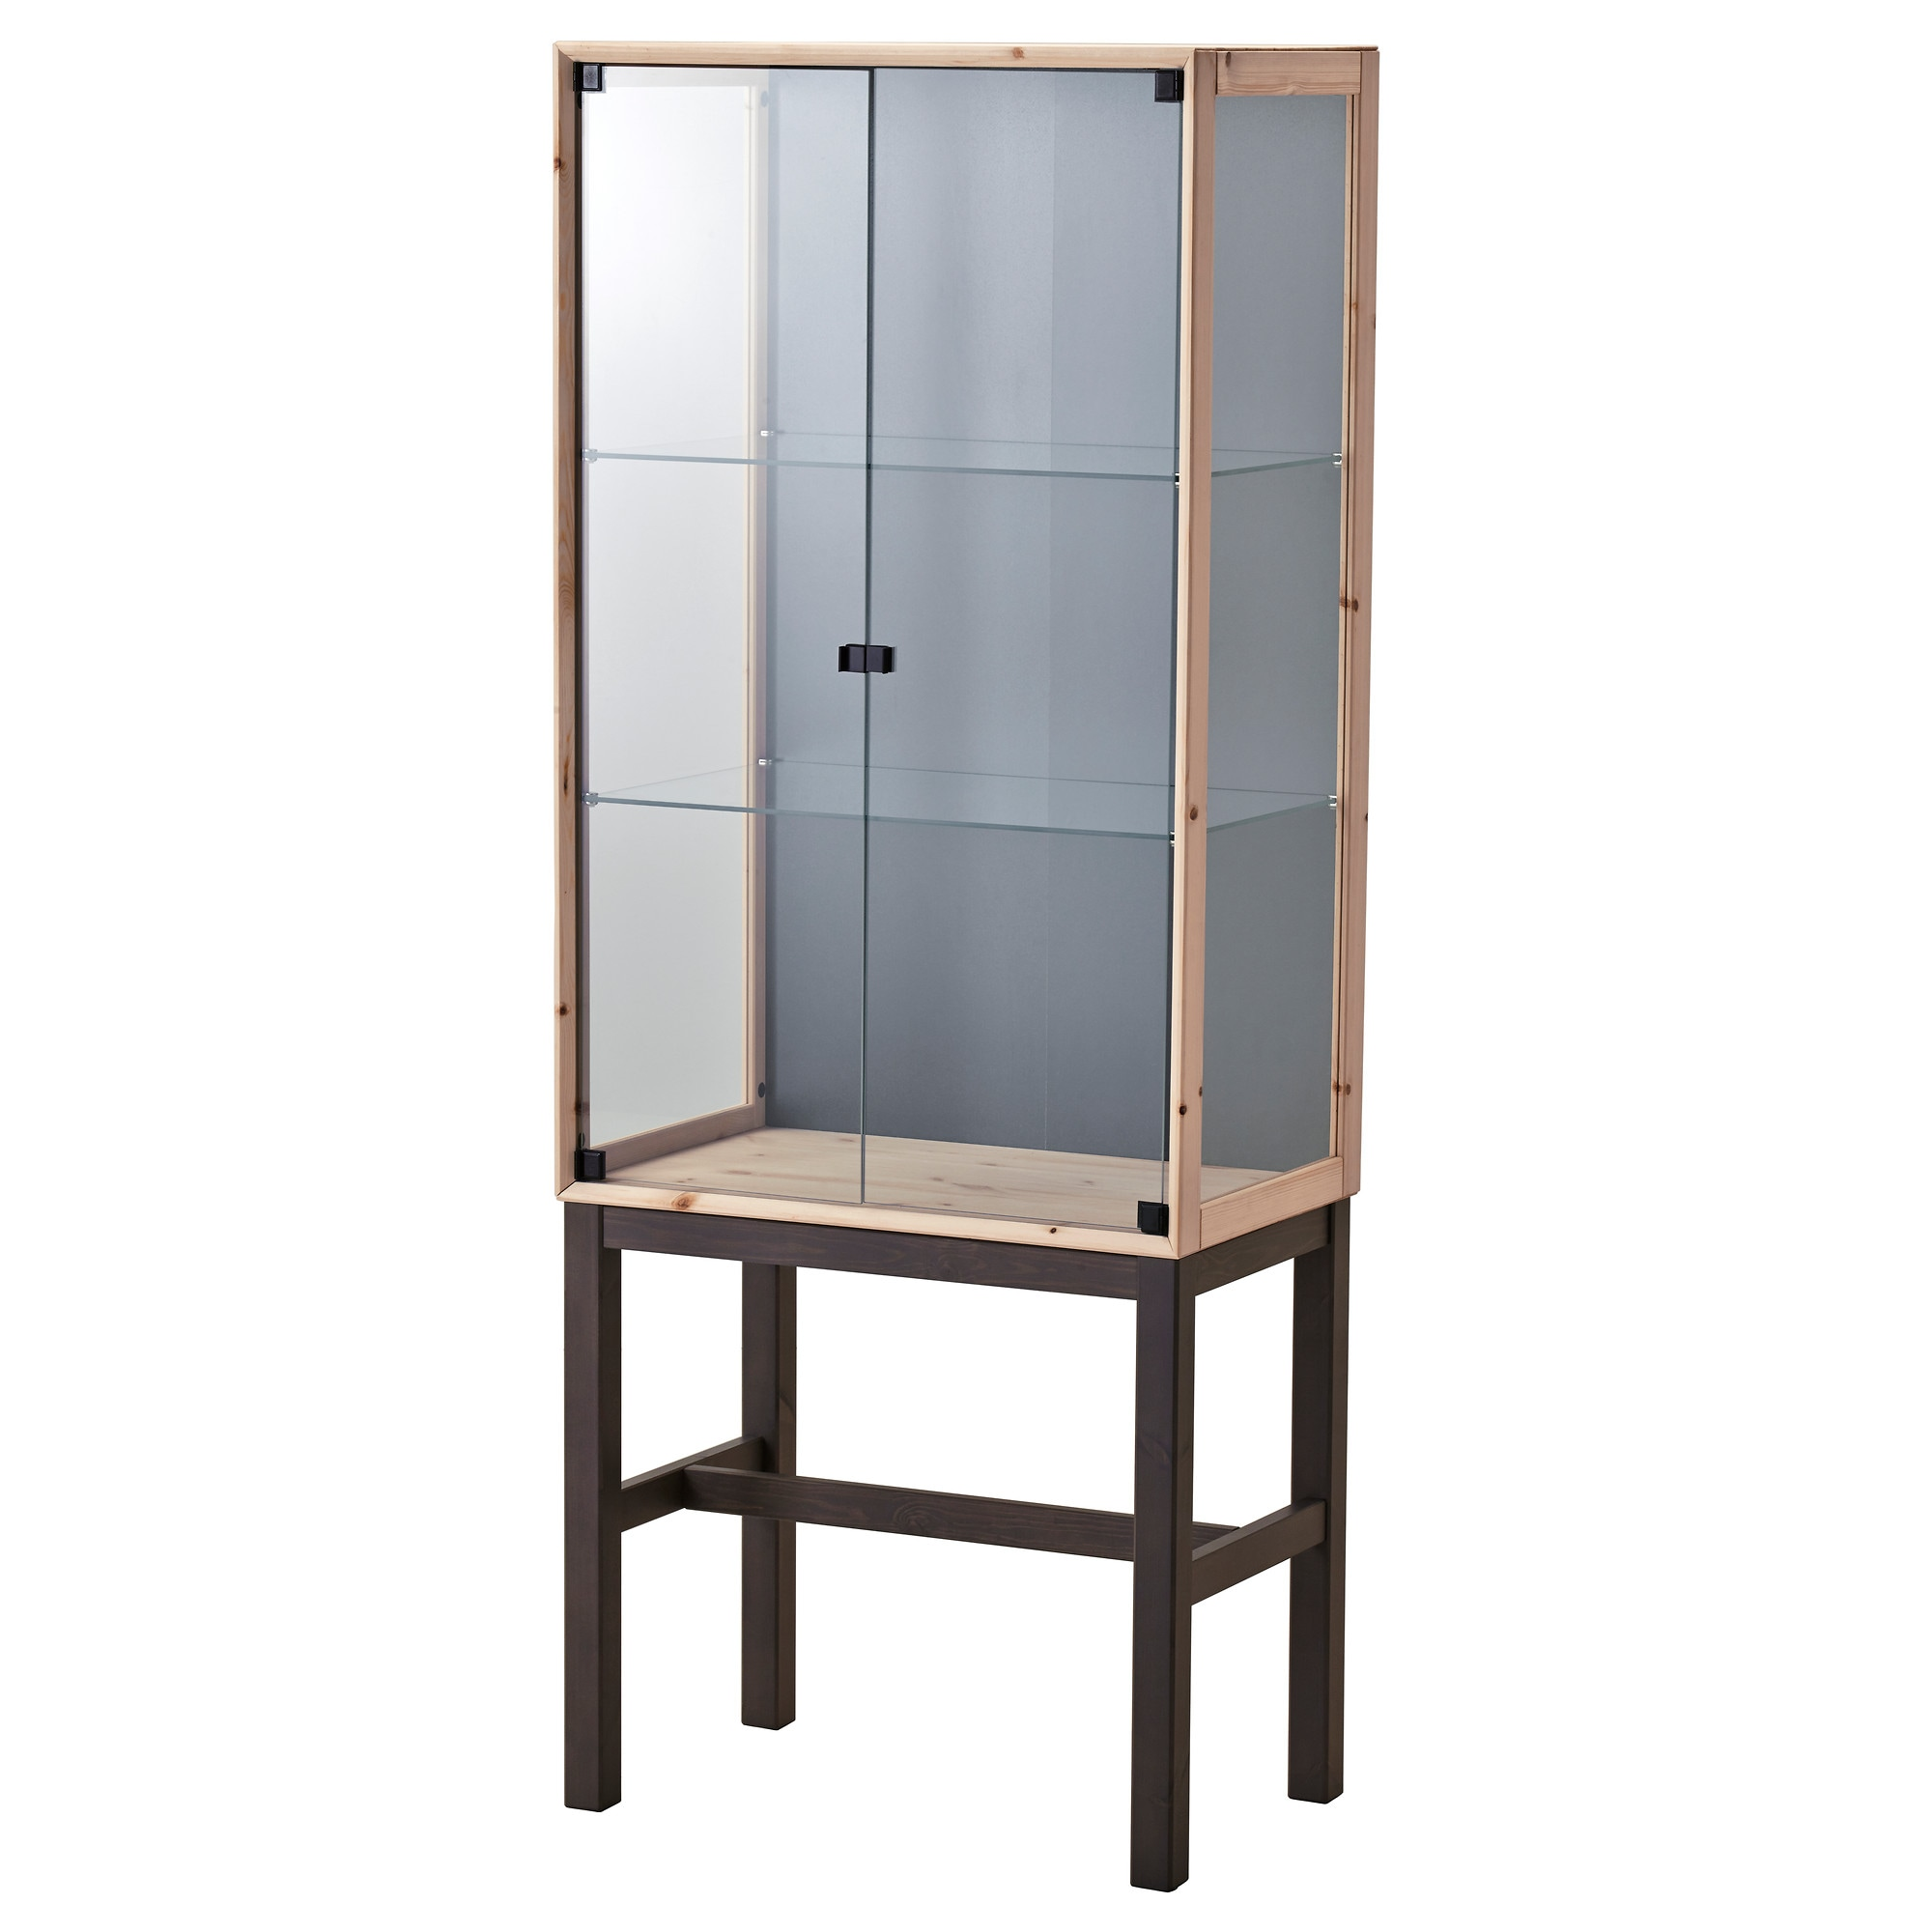 Norden glass door cabinet ikea - Ikea glass cabinets ...